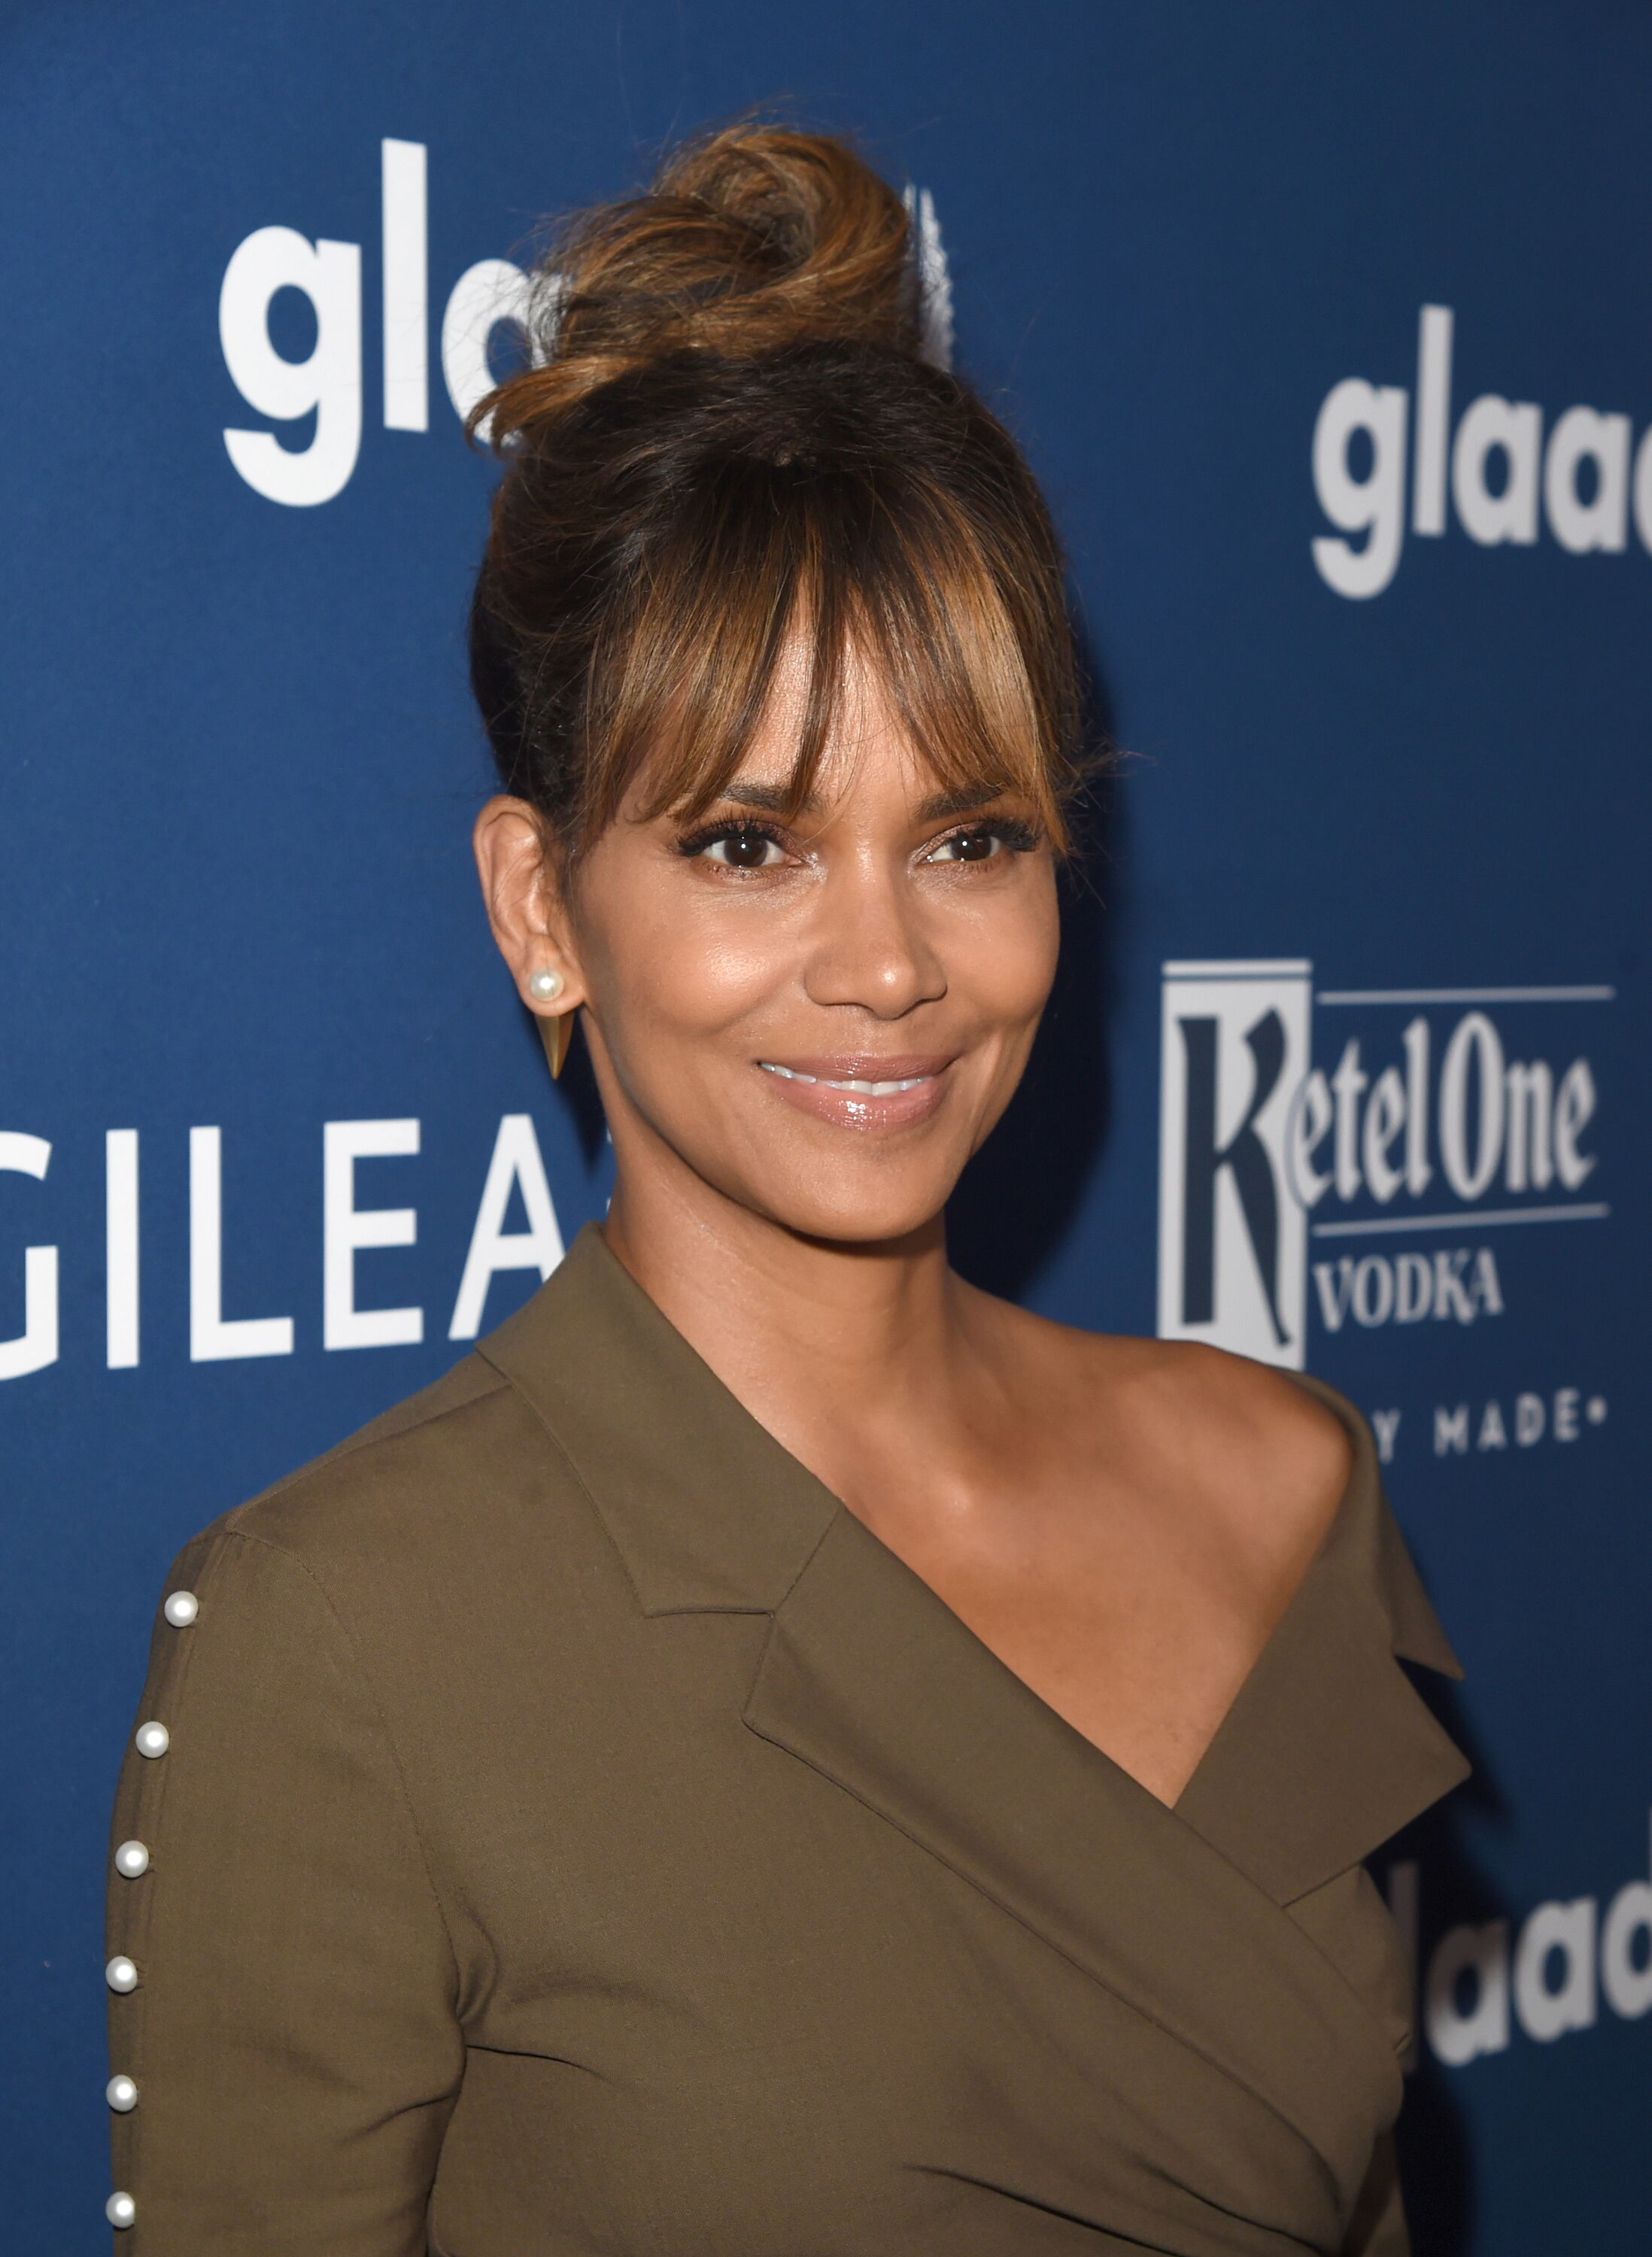 Halle Berry attends the 29th Annual GLAAD Media Awards at The Beverly Hilton Hotel on April 12, 2018. | Photo: Getty Images